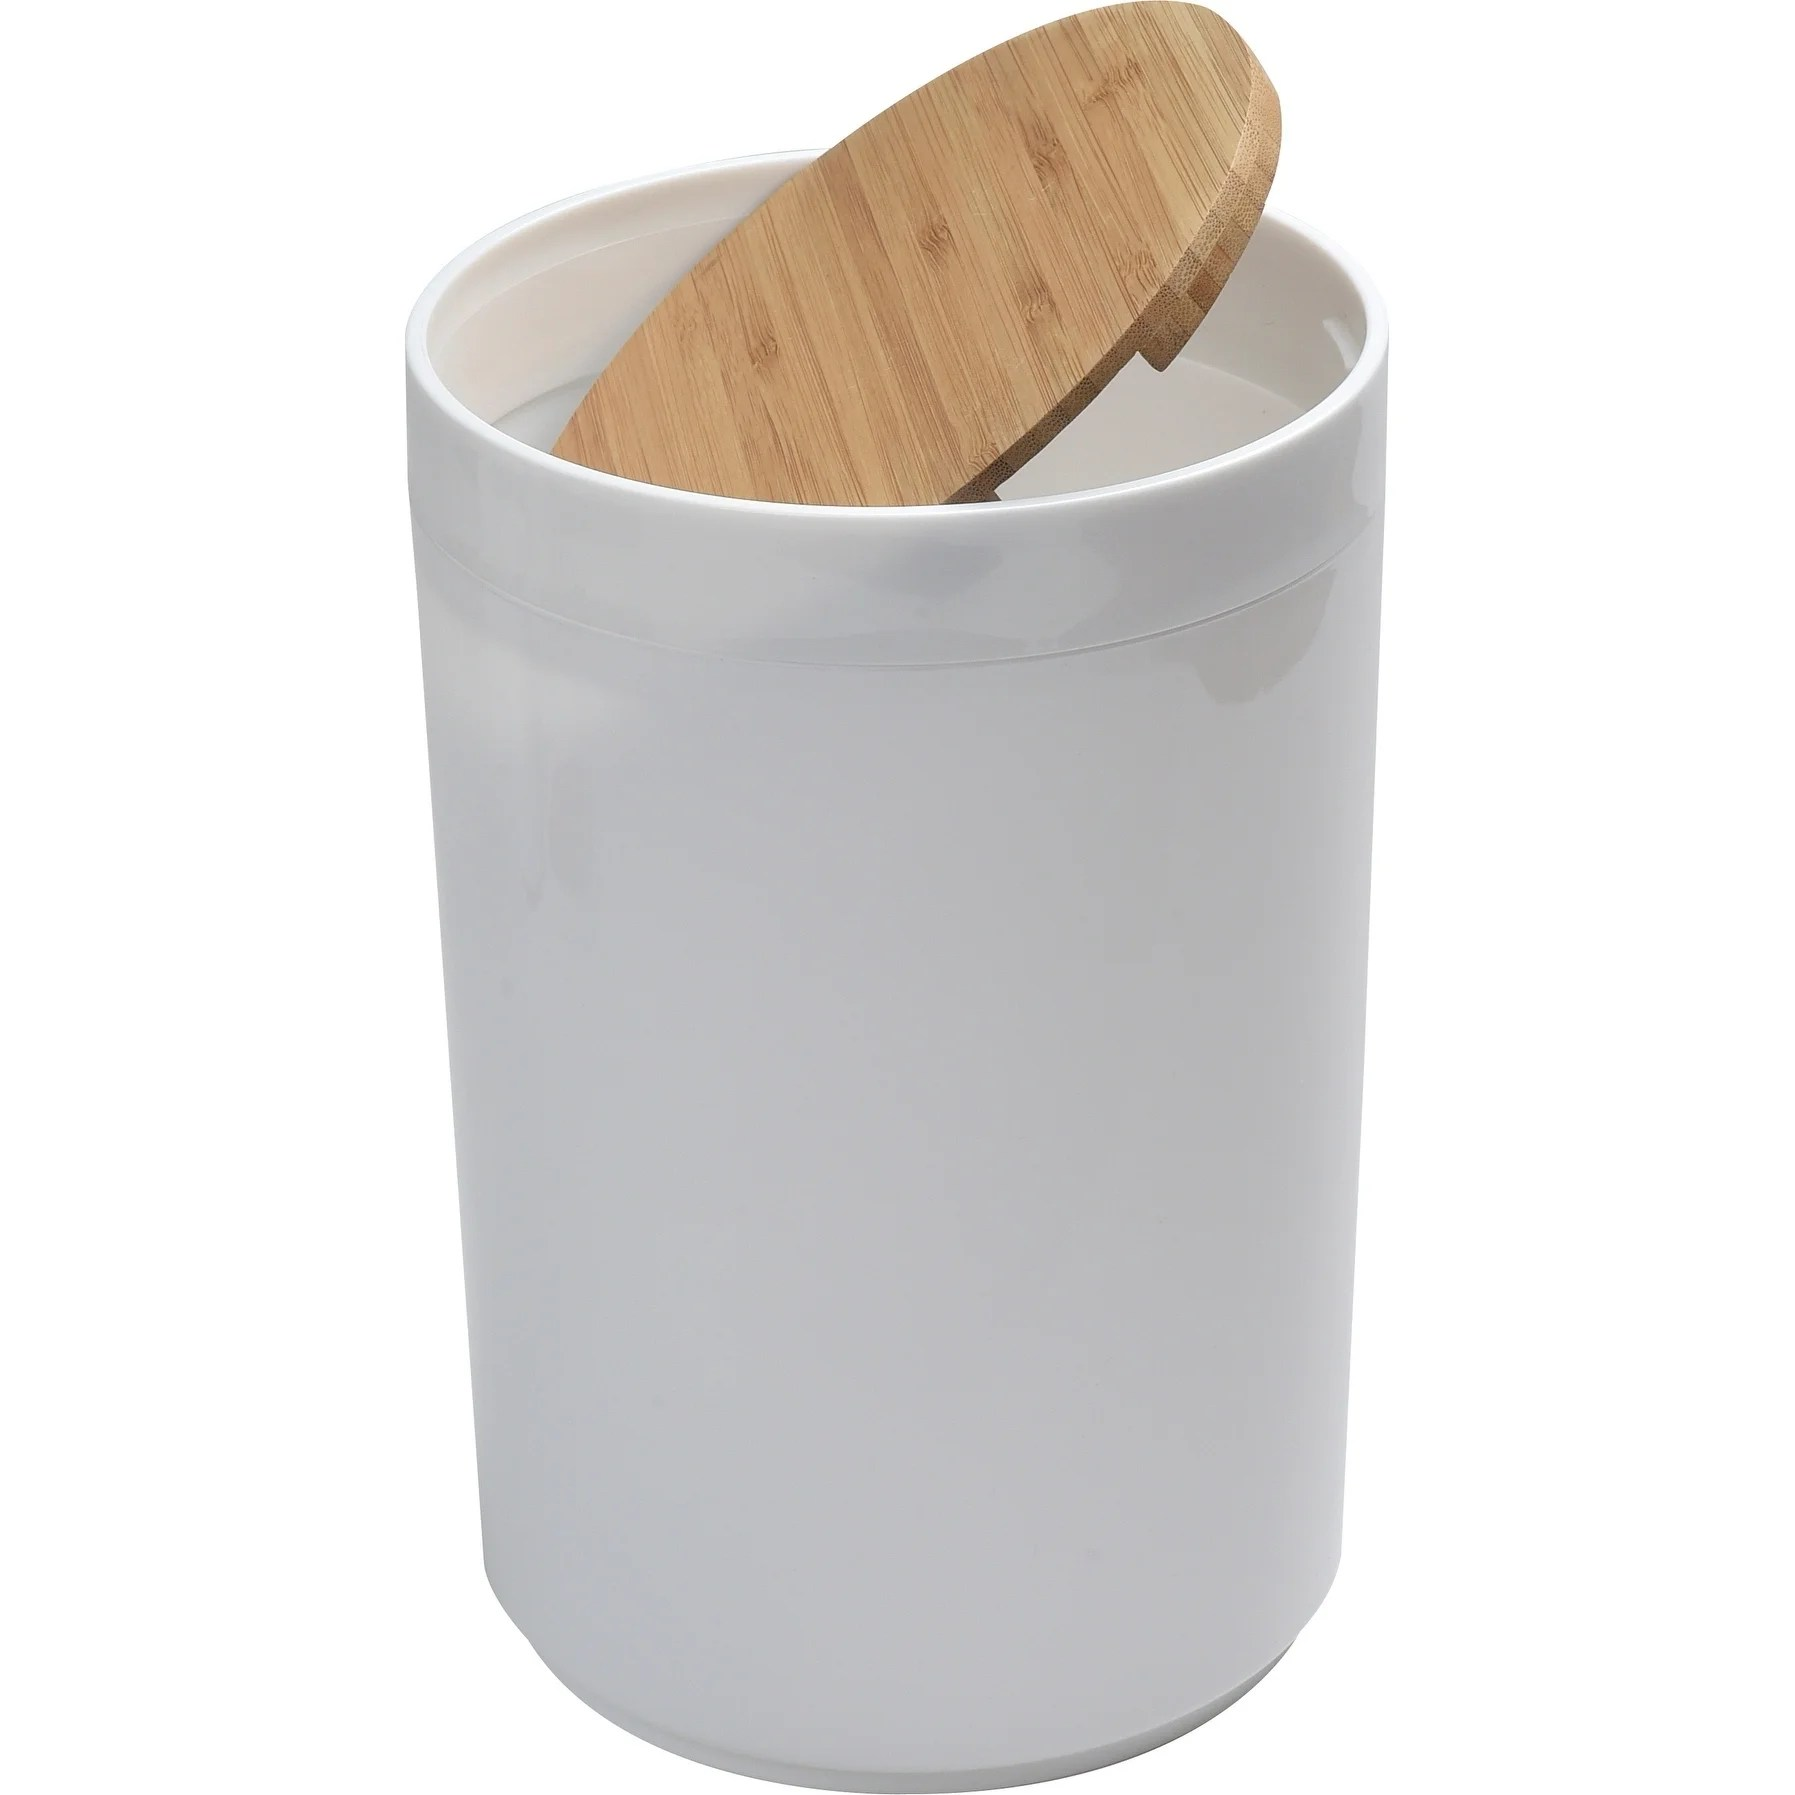 Small White Trash Can With Lid Evideco White Trashcan Padang Waste Bin Bamboo Top Swing